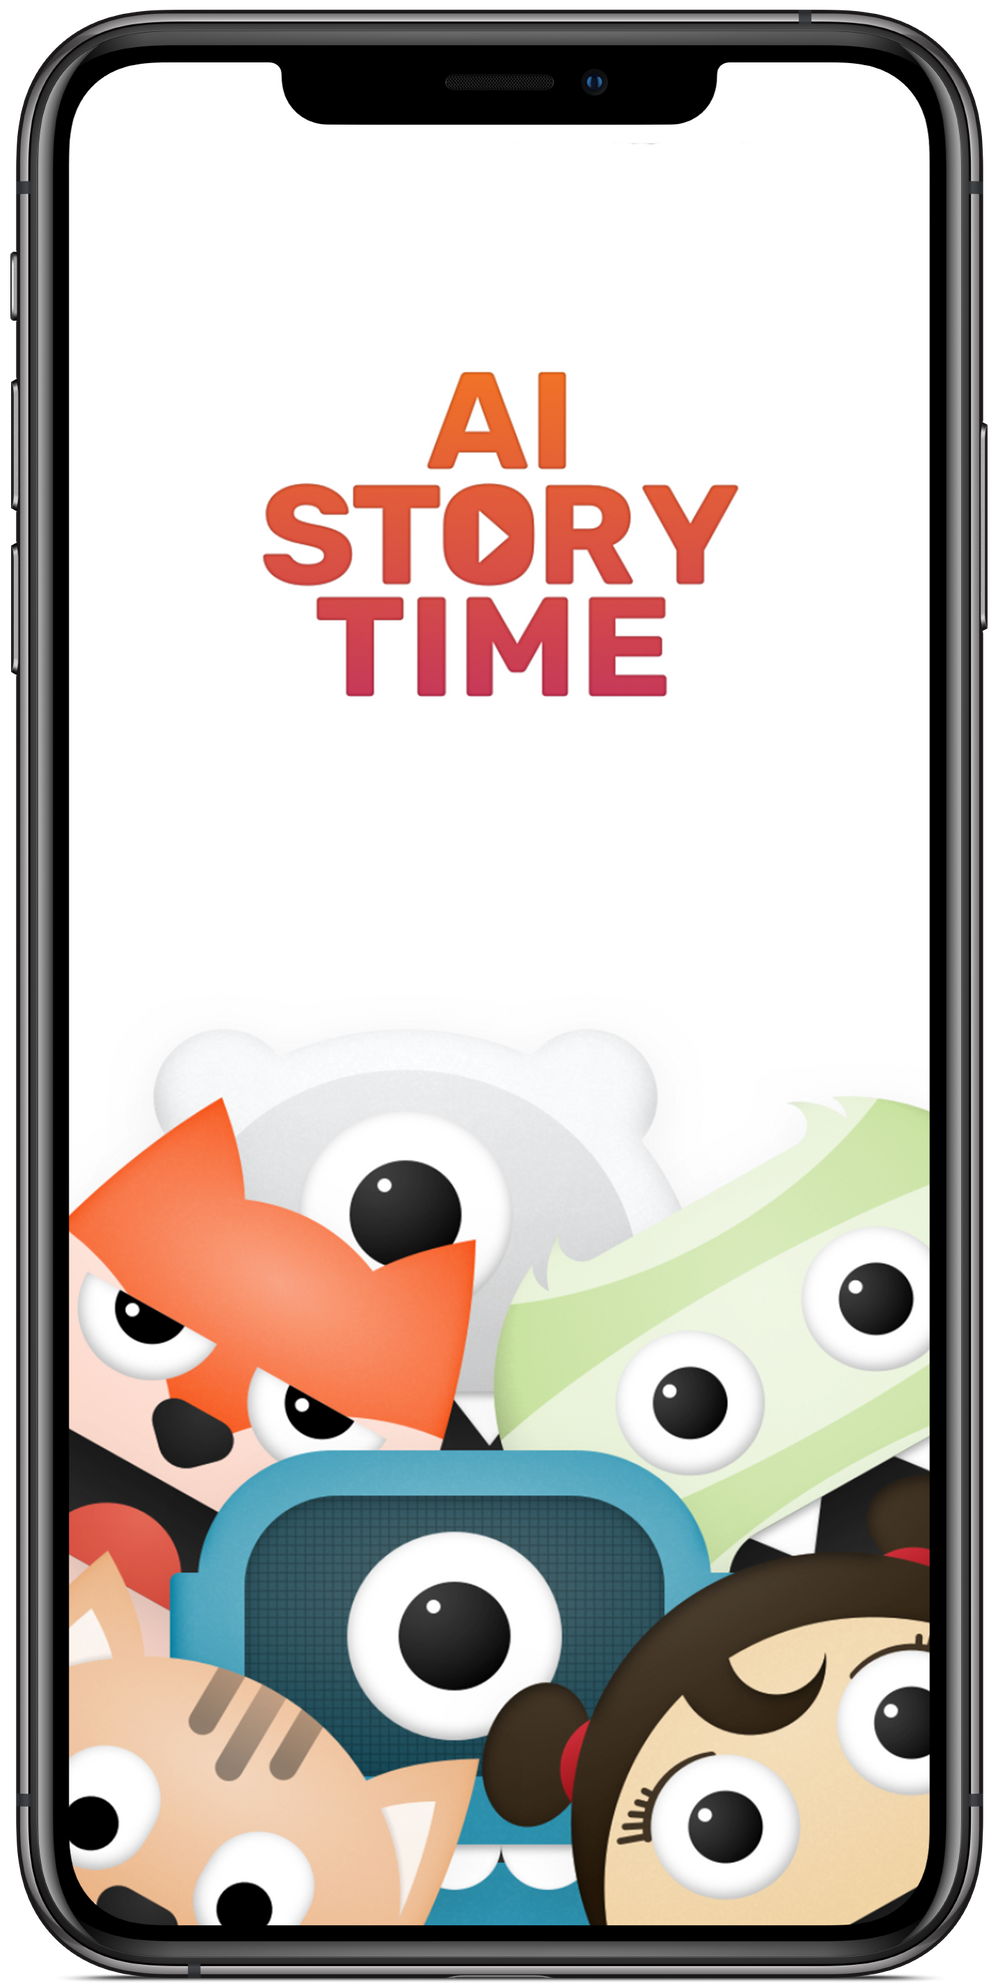 AI STORY TIME - Android Phone